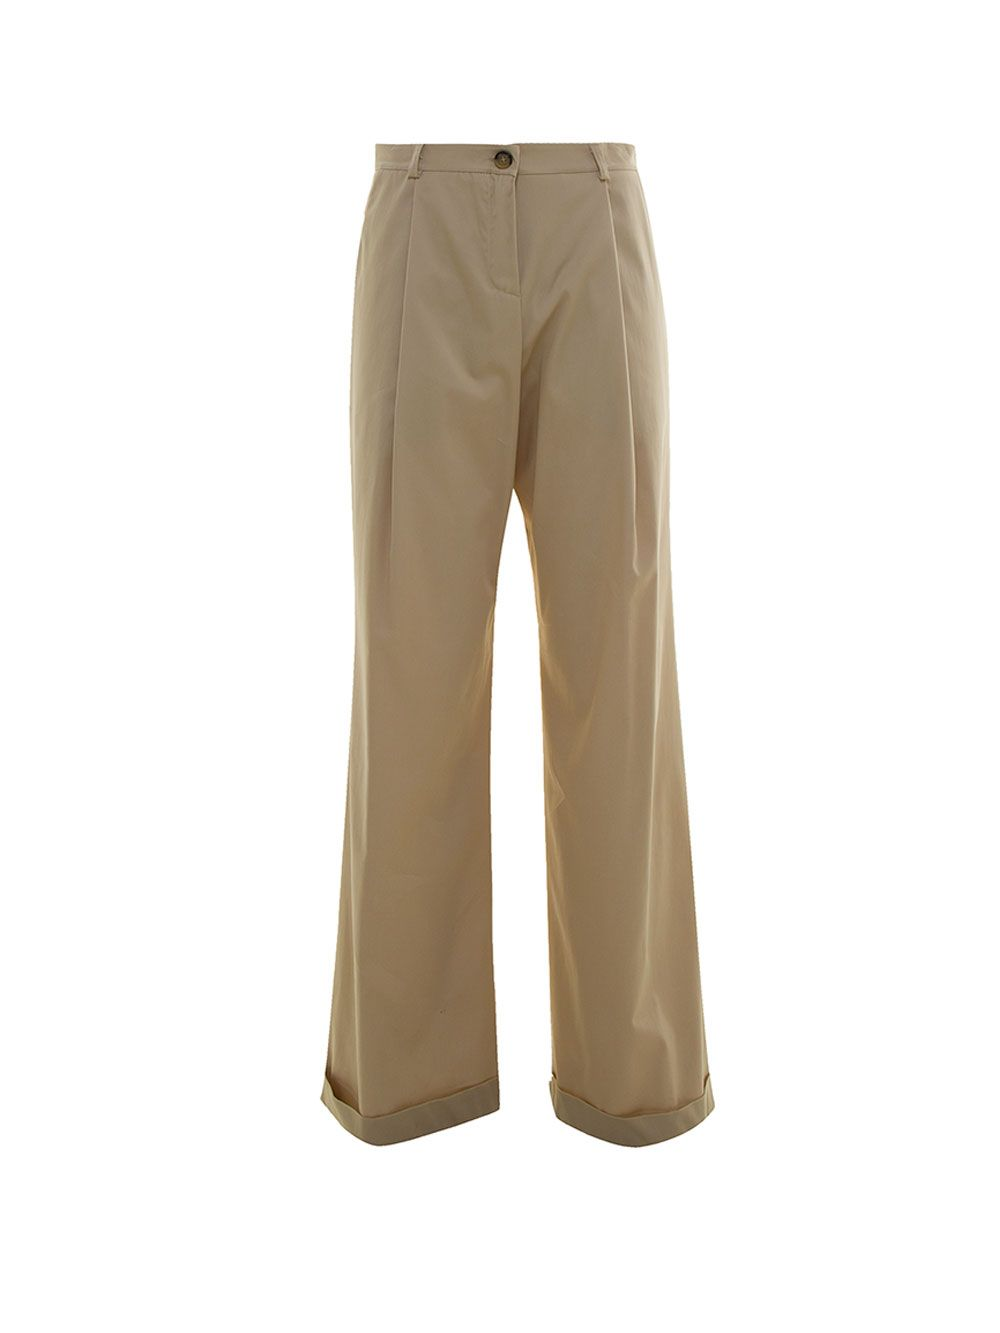 Sei alta.. darei una chance a questi pantaloni! YOu're tall - give these pants a try!